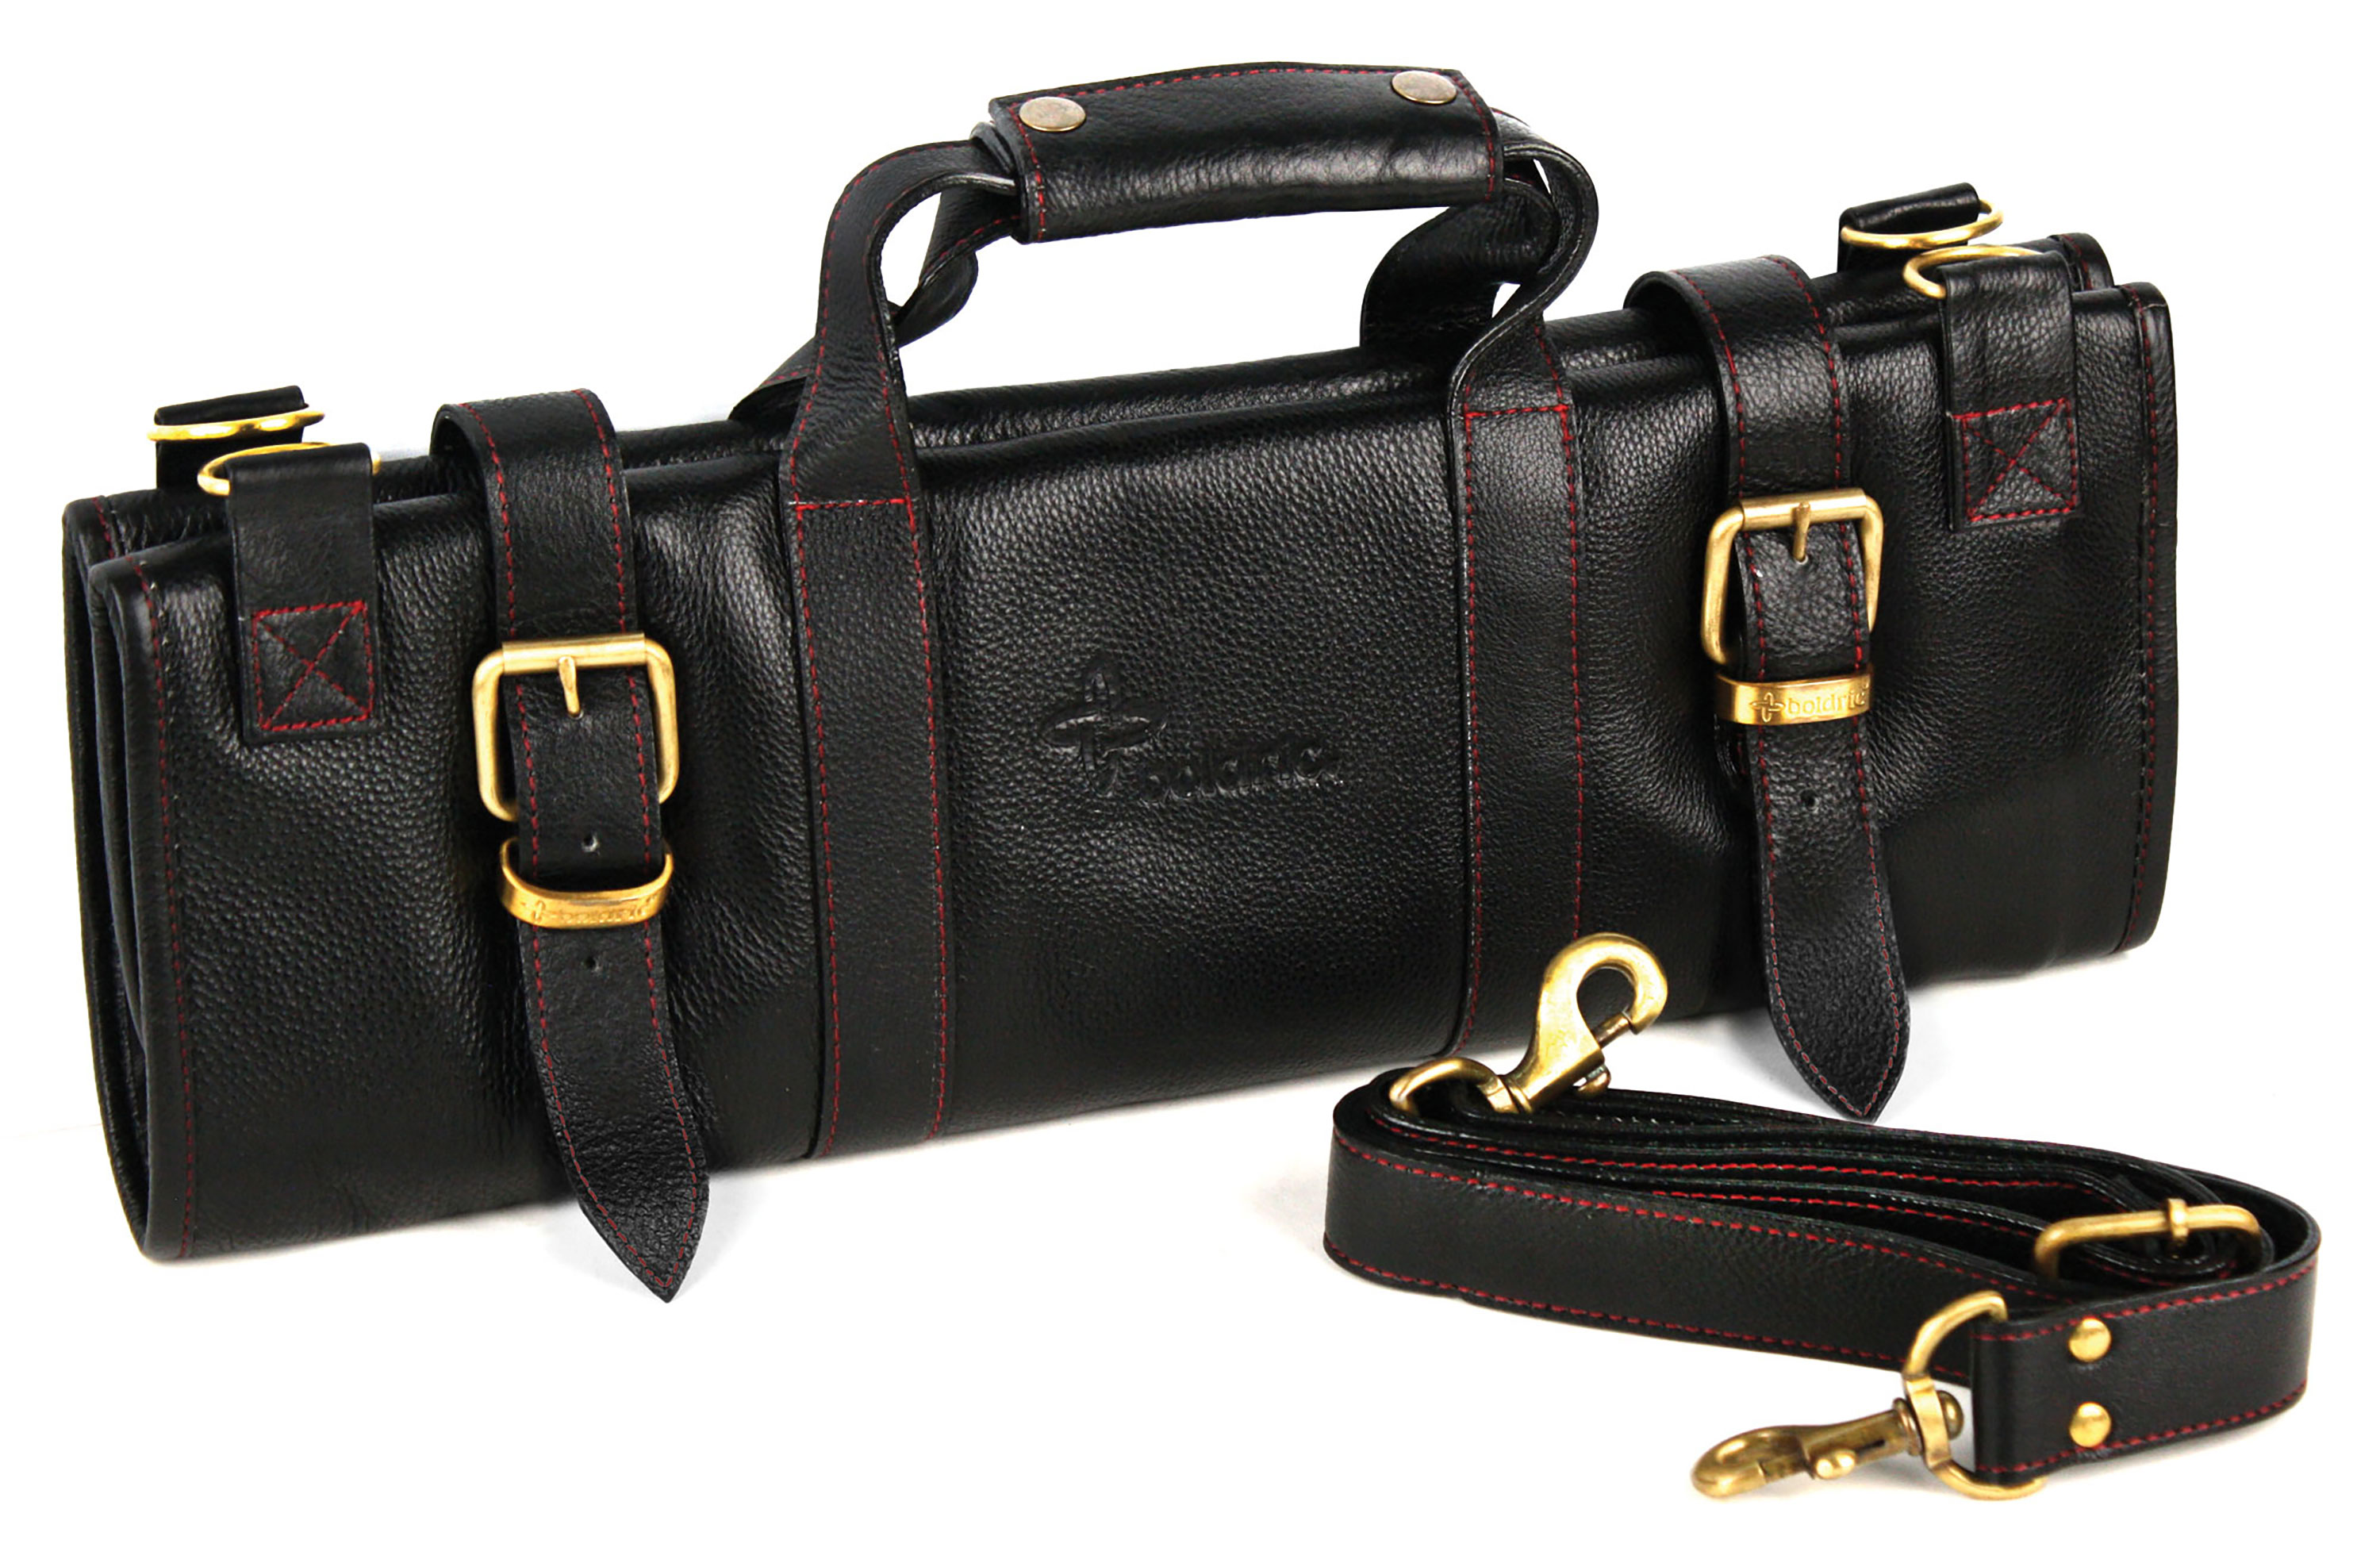 Boldric Leather Knife Bag 17 Pocket Black Cutlery And More